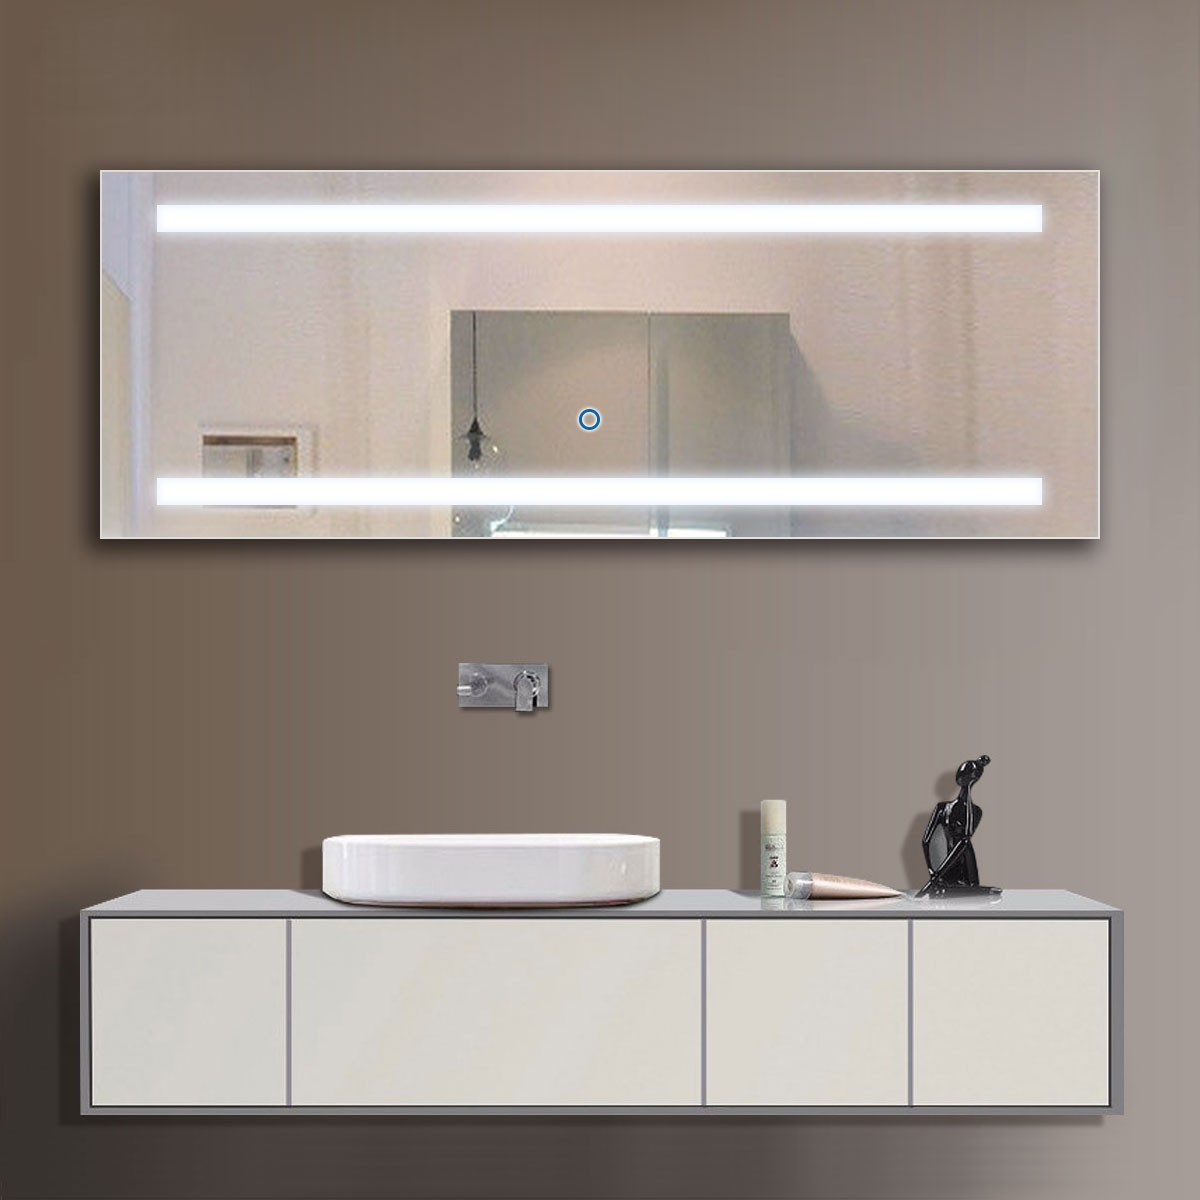 65 x 24 po miroir led salle de bain avec l interrupteur. Black Bedroom Furniture Sets. Home Design Ideas